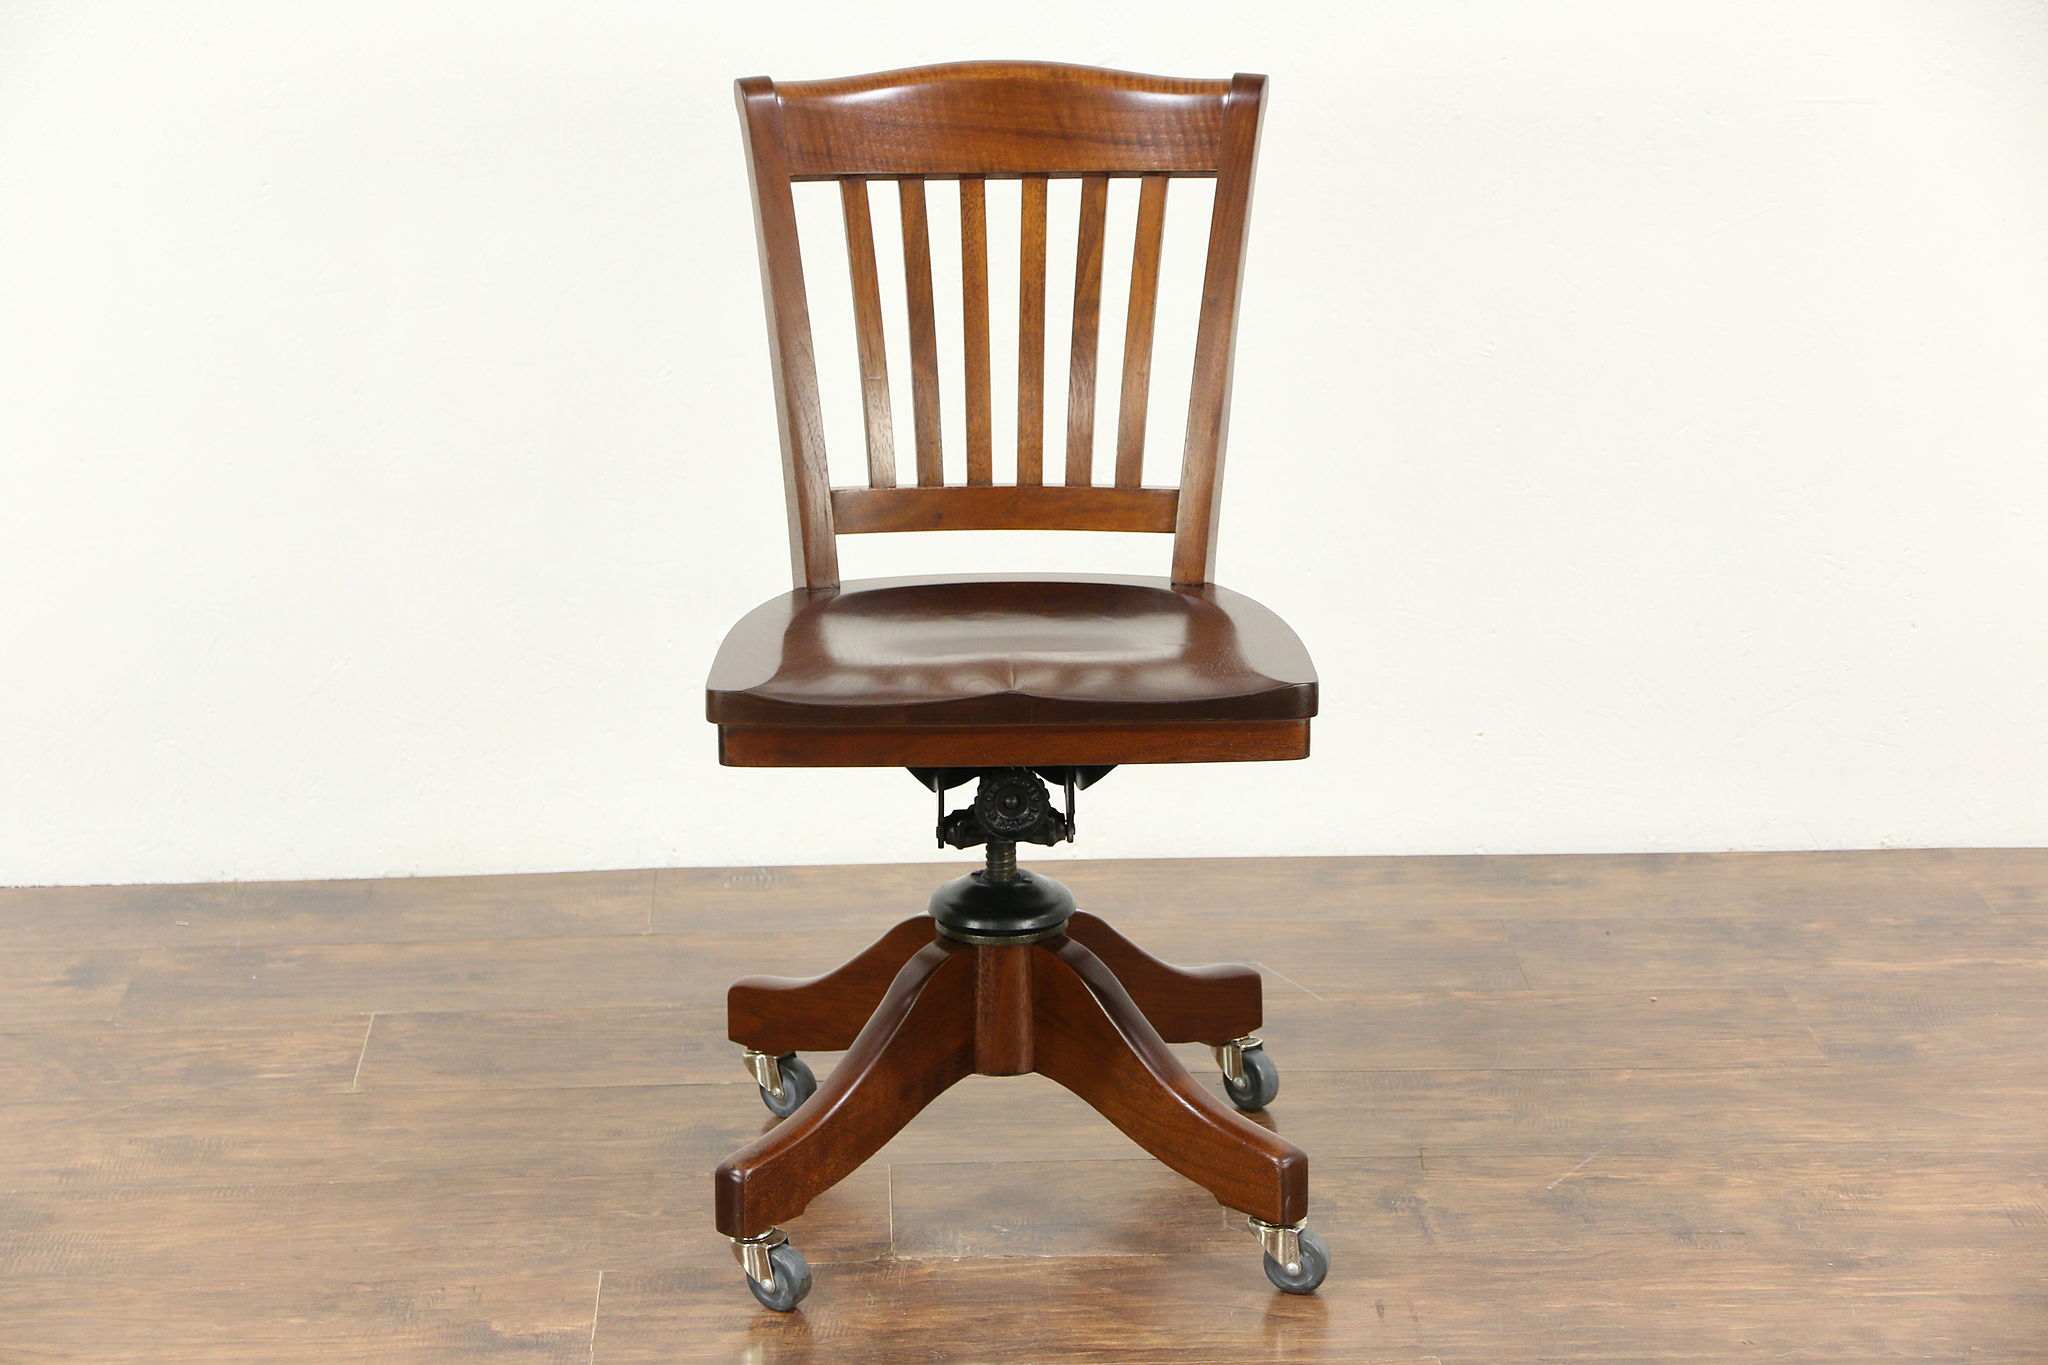 Walnut 1915 Antique Swivel Adjustable fice or Library Desk Chair